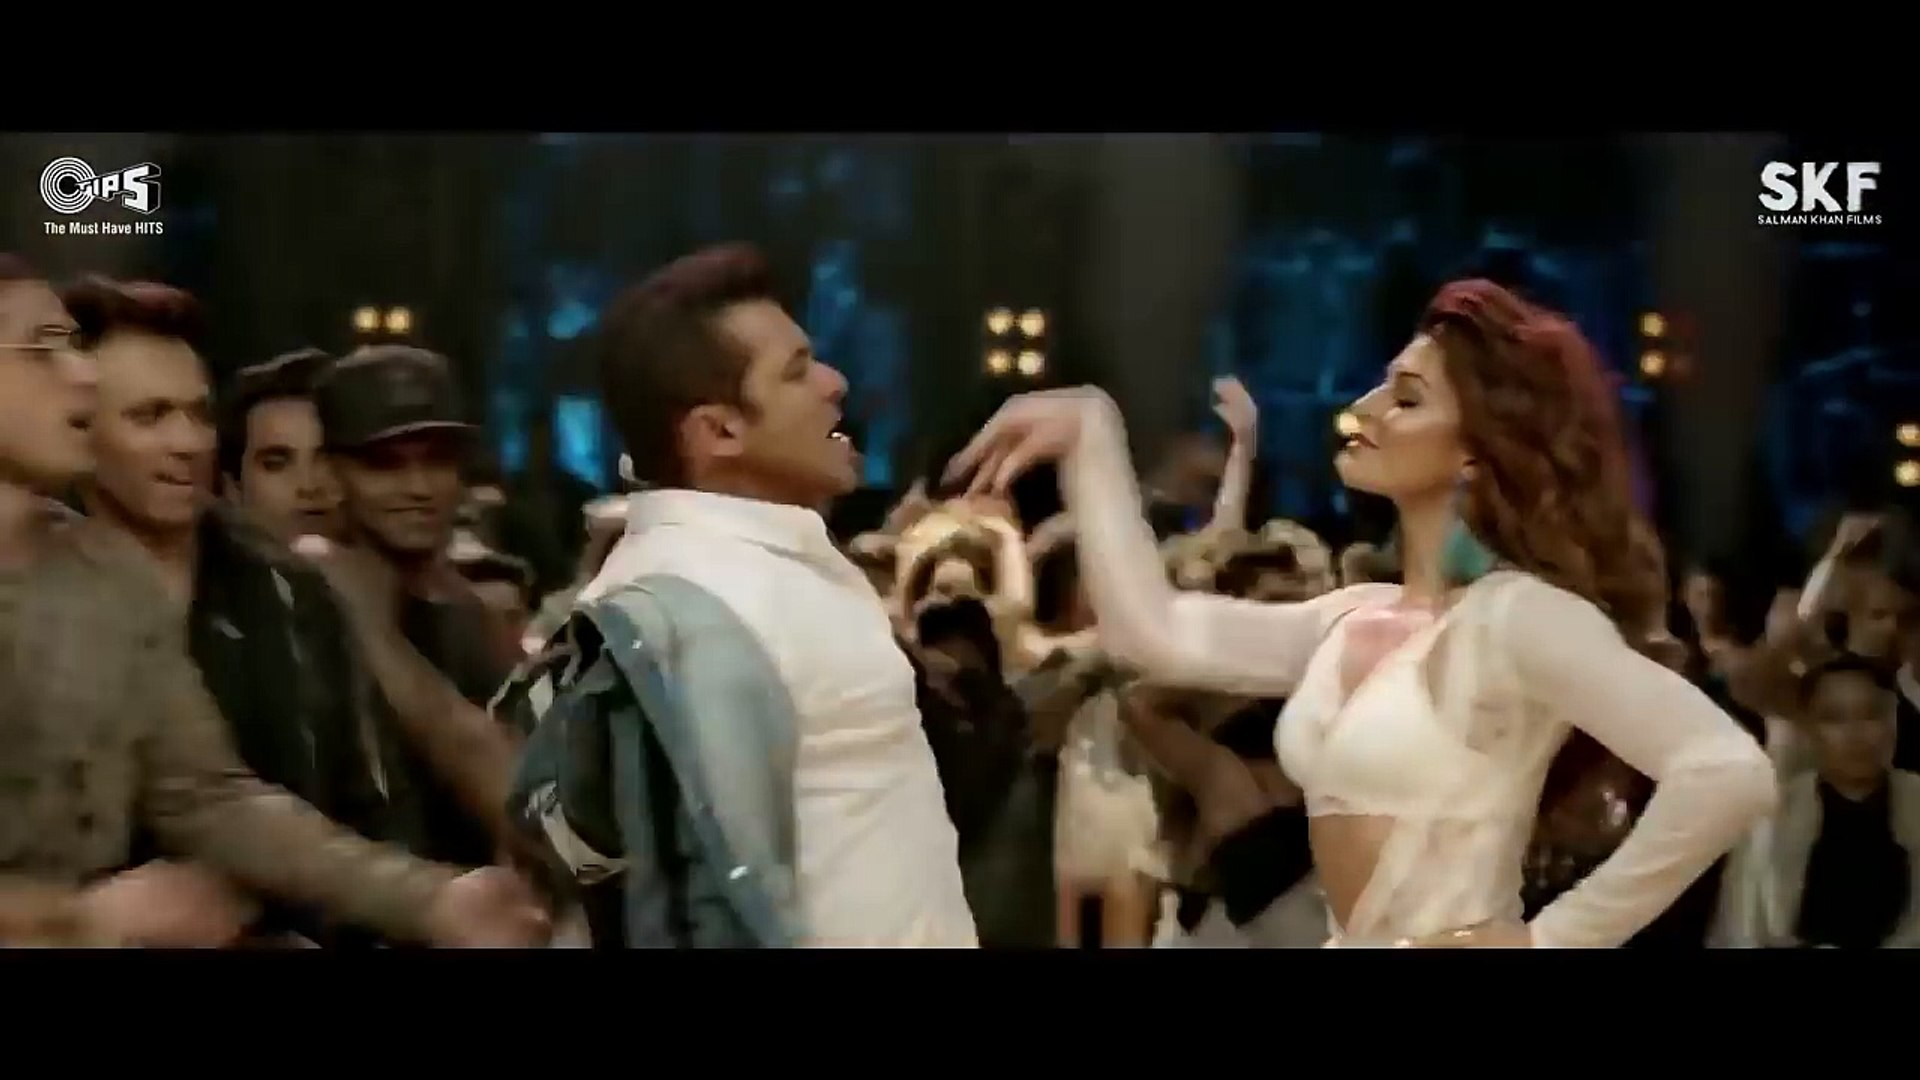 Heeriye Song Race 3 Whatsapp Status Video - Race 3 Heeriye Full Song, punjabi song,new punjabi song,